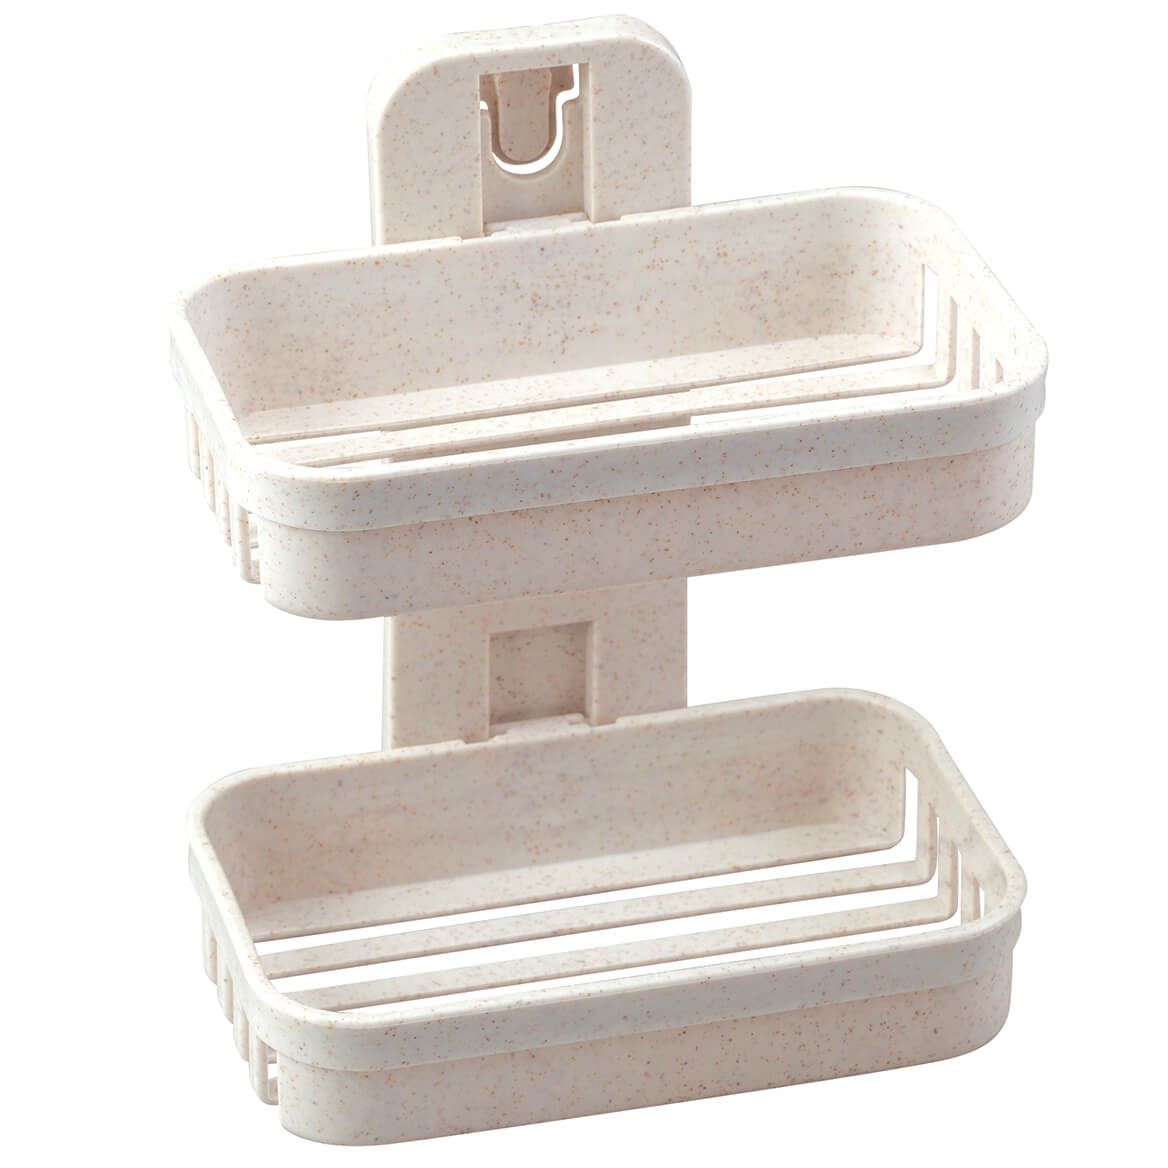 Wall Mounted Wheat Straw 2-Tier Soap Dishes-371989